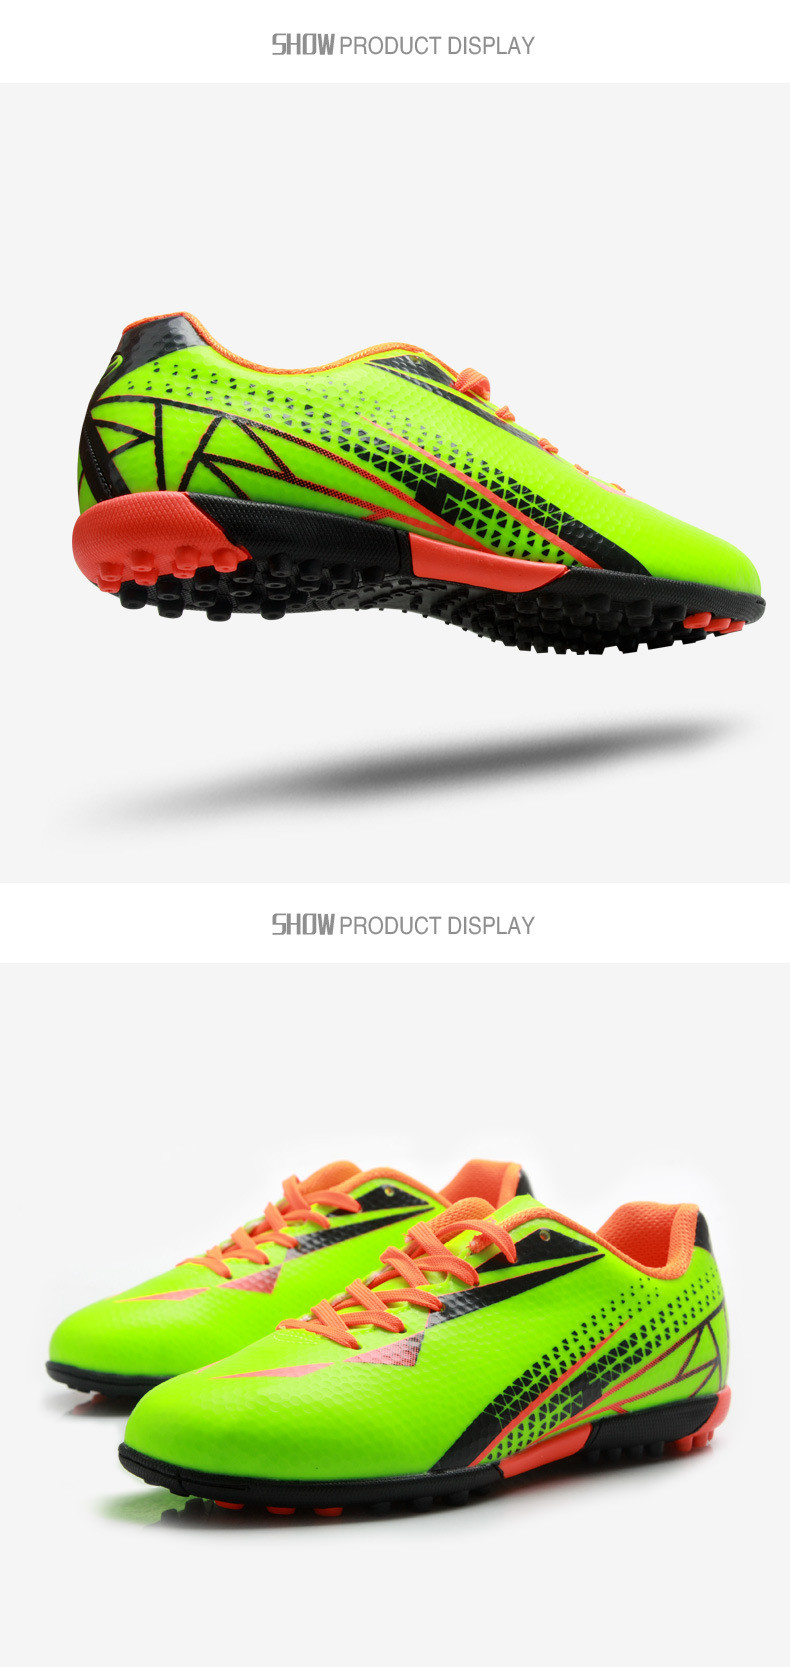 new soccer shoes boots futsal chaussures foot mens indoor football boots voetbalschoenen football cleats soccer shoes 3 colorsusd 35 99 pair  [ 790 x 1667 Pixel ]